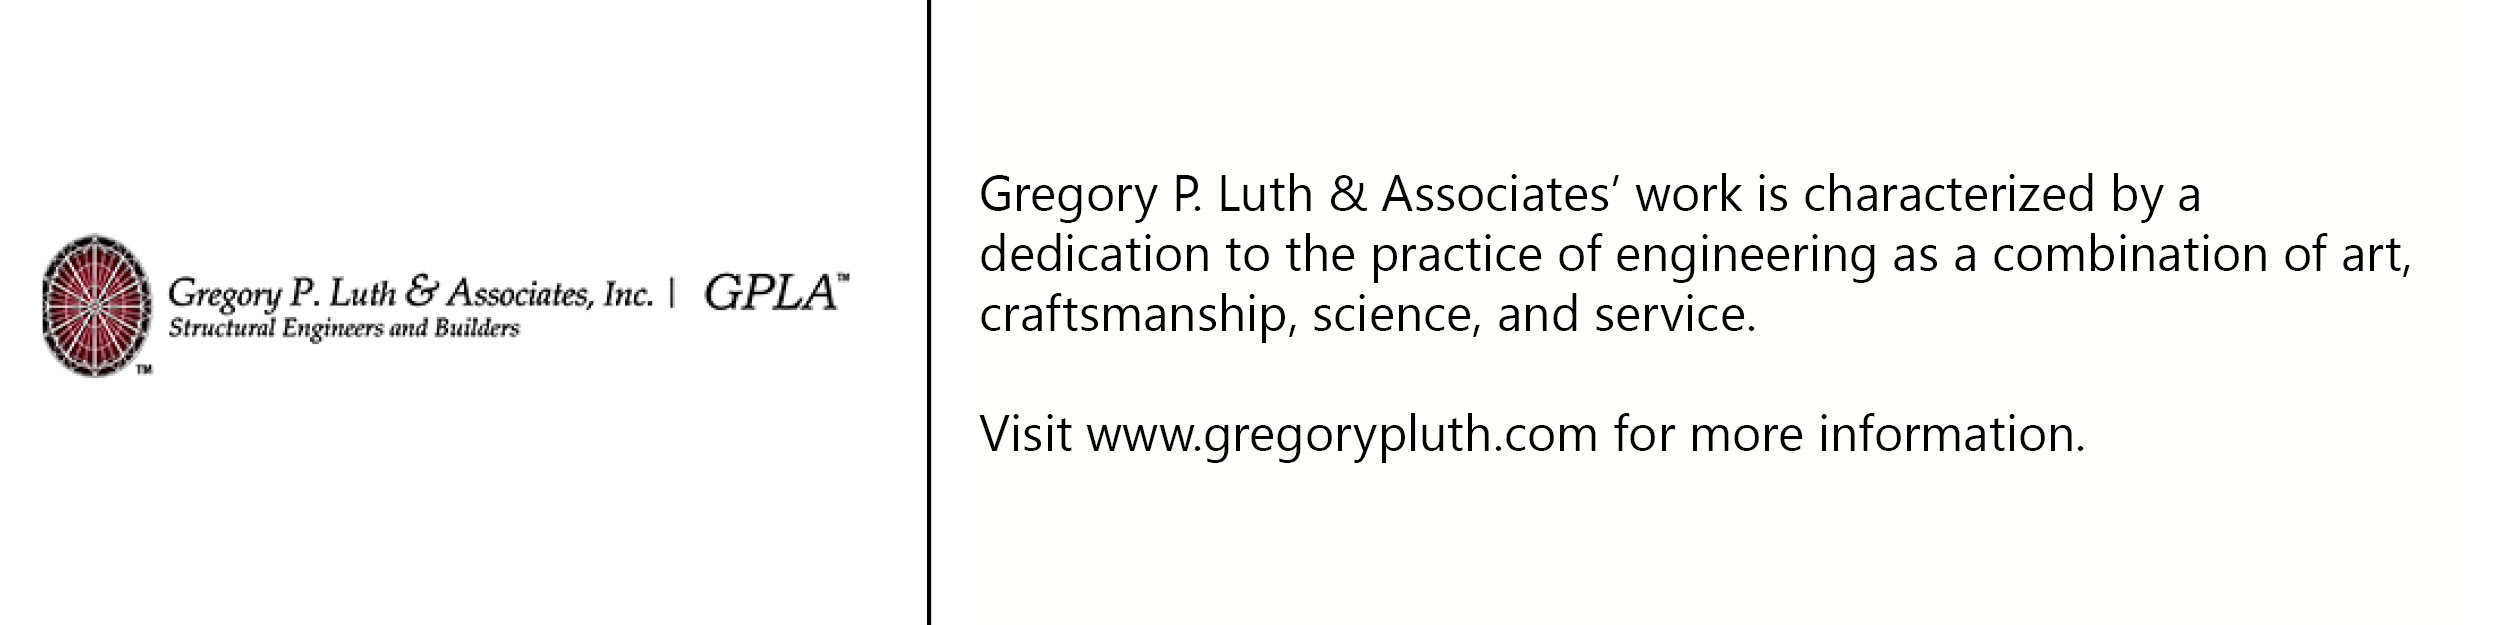 Gregory L. Puth & Assoc. logo with description of company